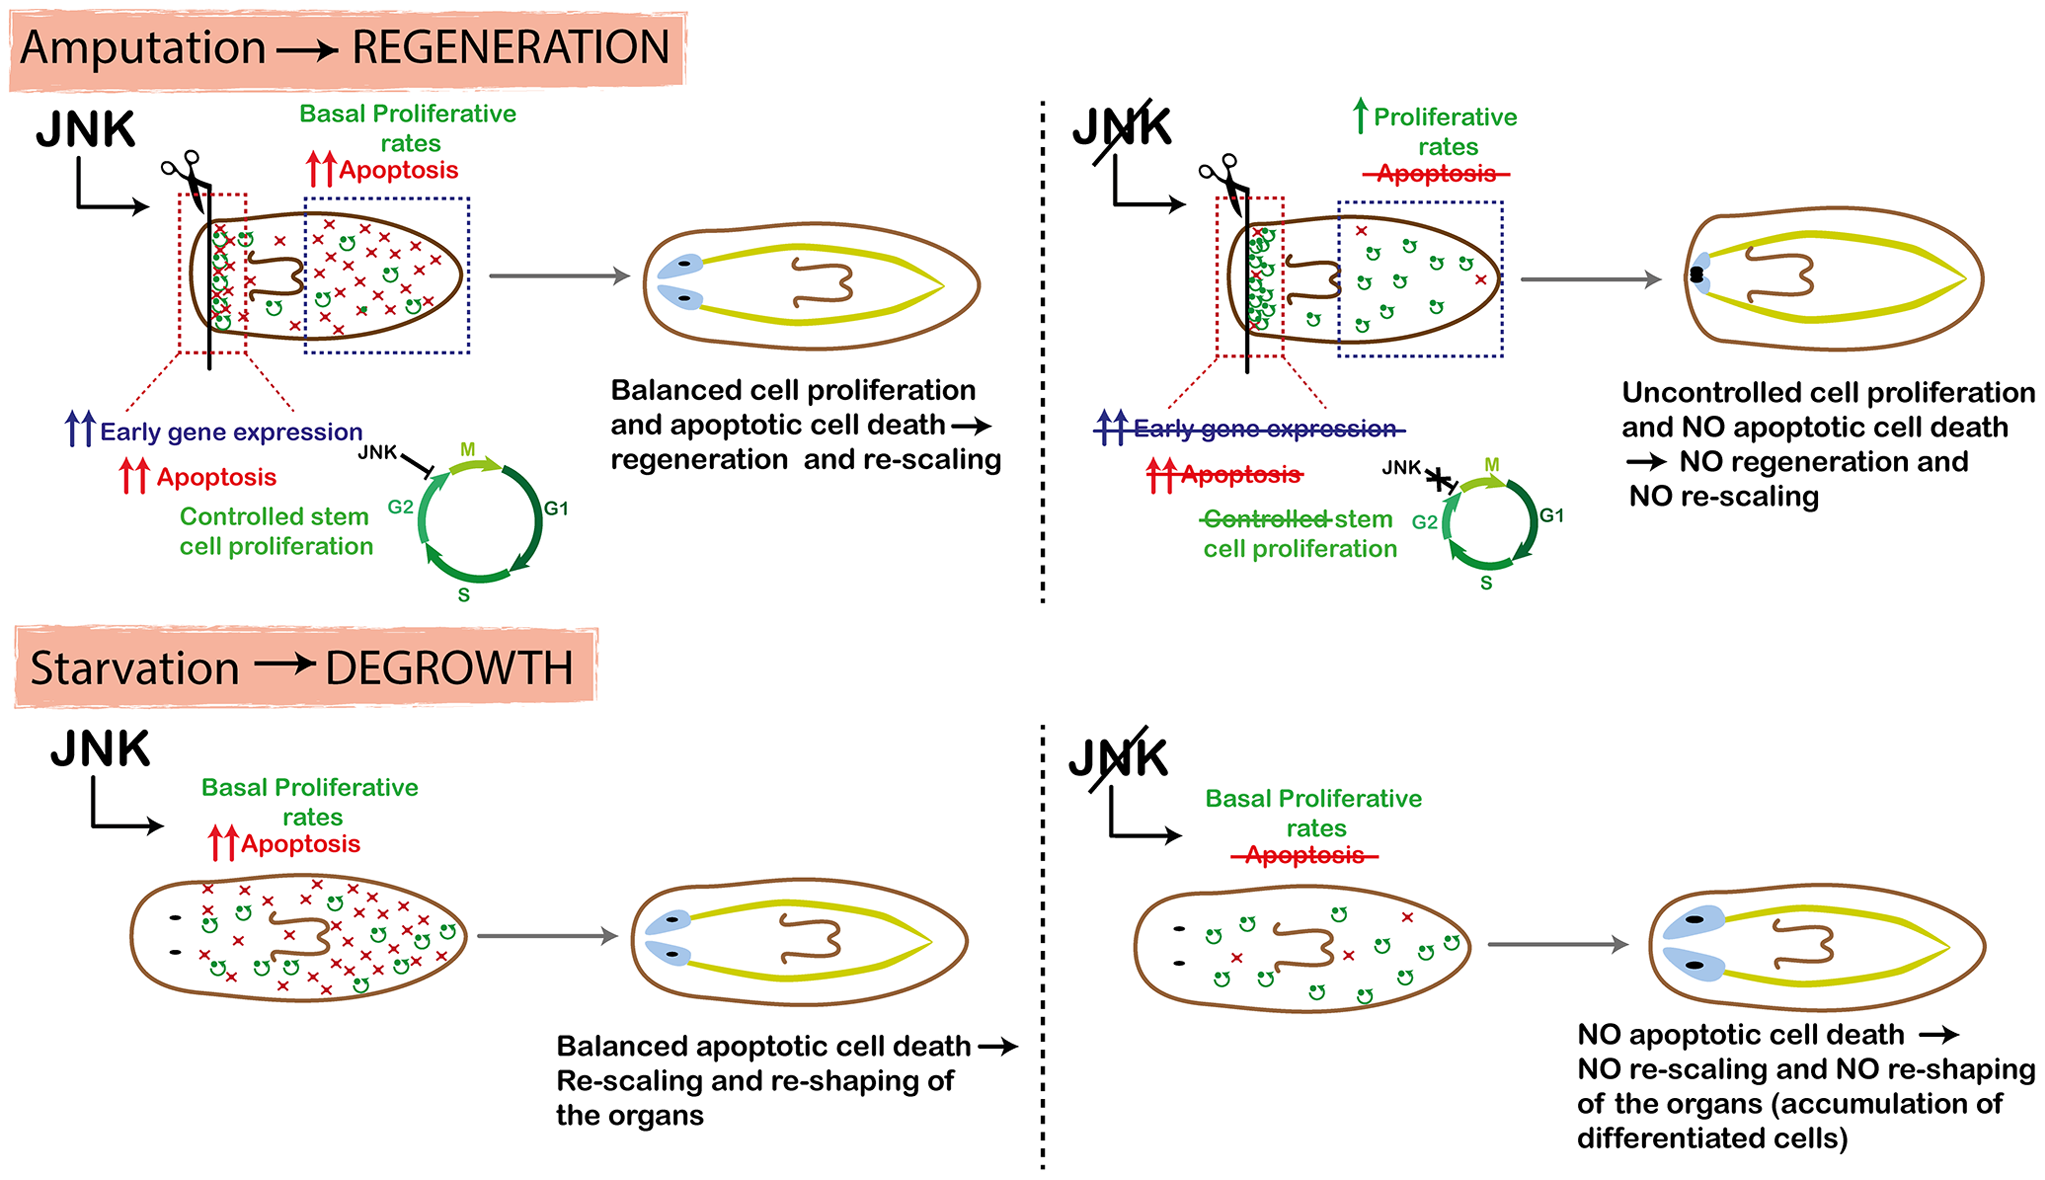 Schematic showing role of JNK in planarian regeneration and homeostatic degrowth.